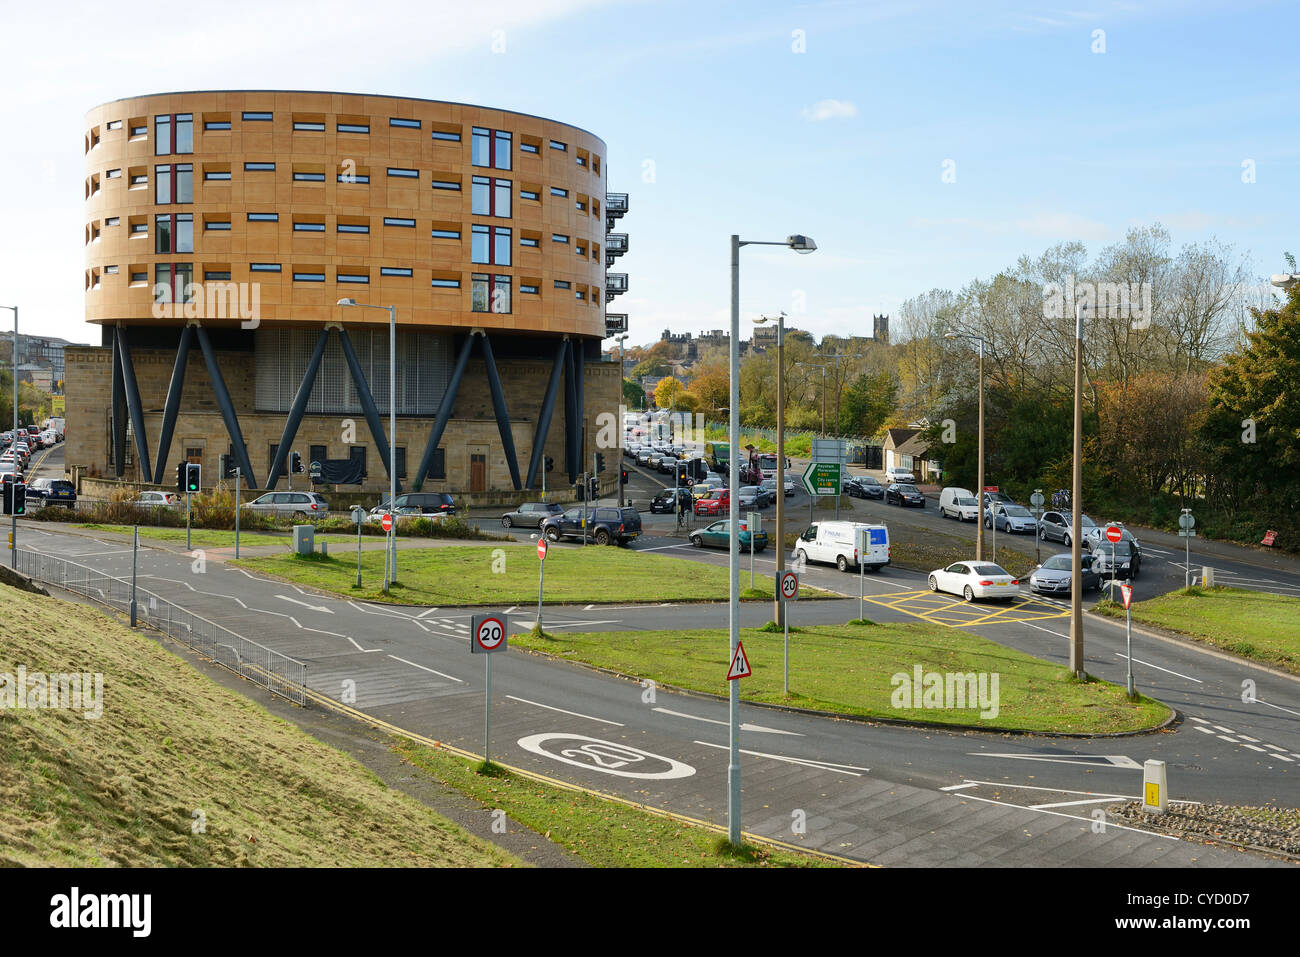 The Old Bus Depot Kingsway apartments on the approach to Lancaster city centre UK - Stock Image